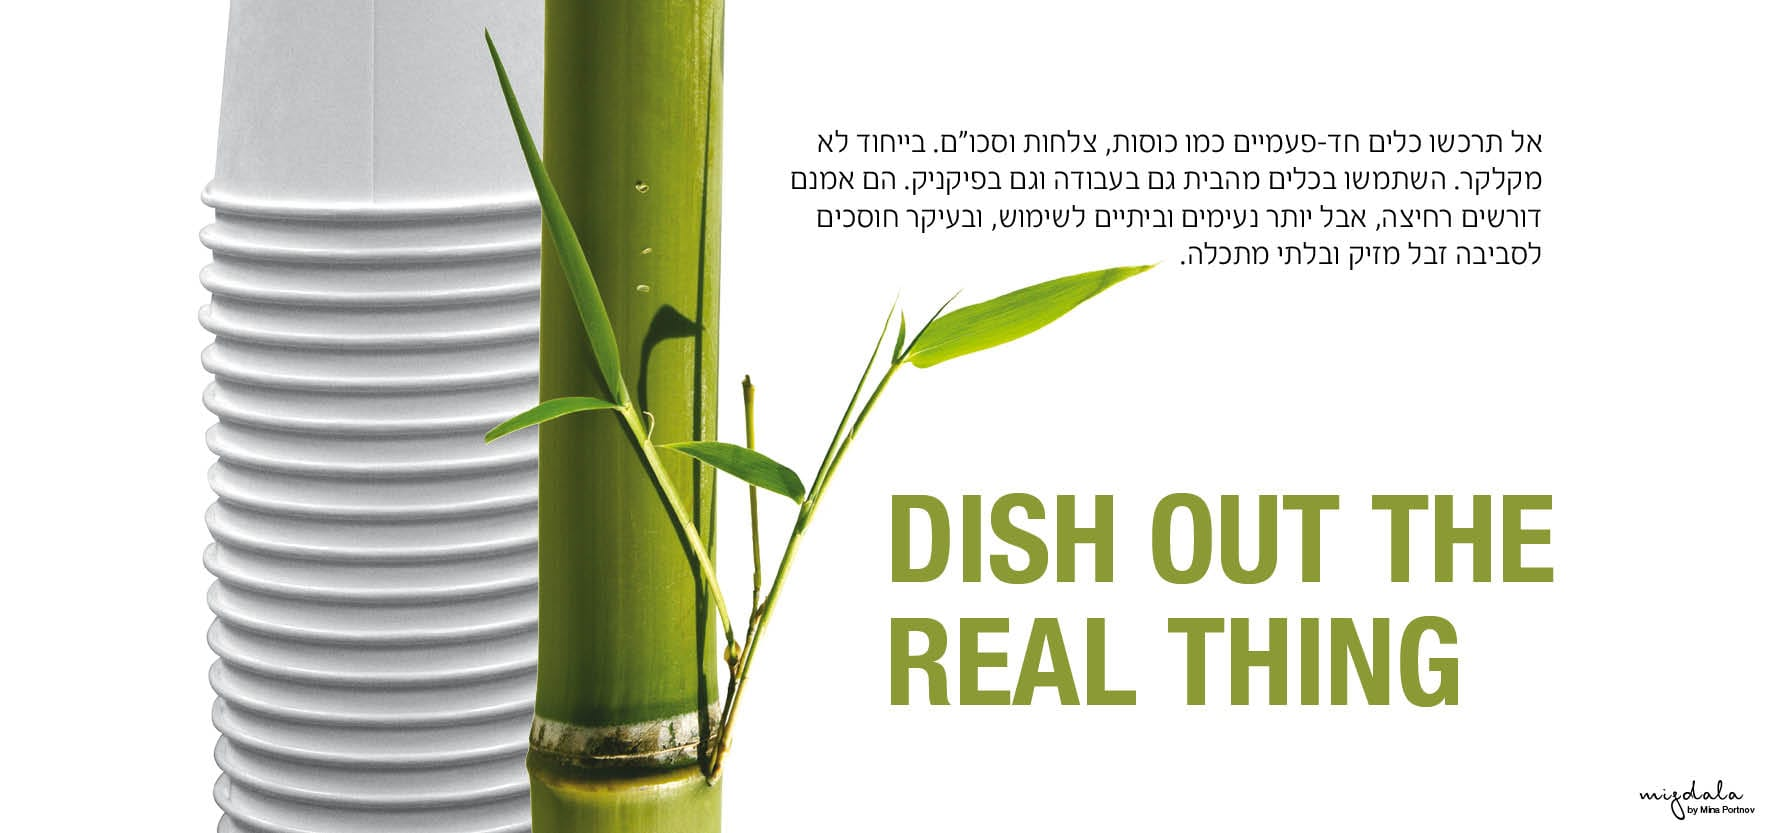 DISH OUT THE REAL THING